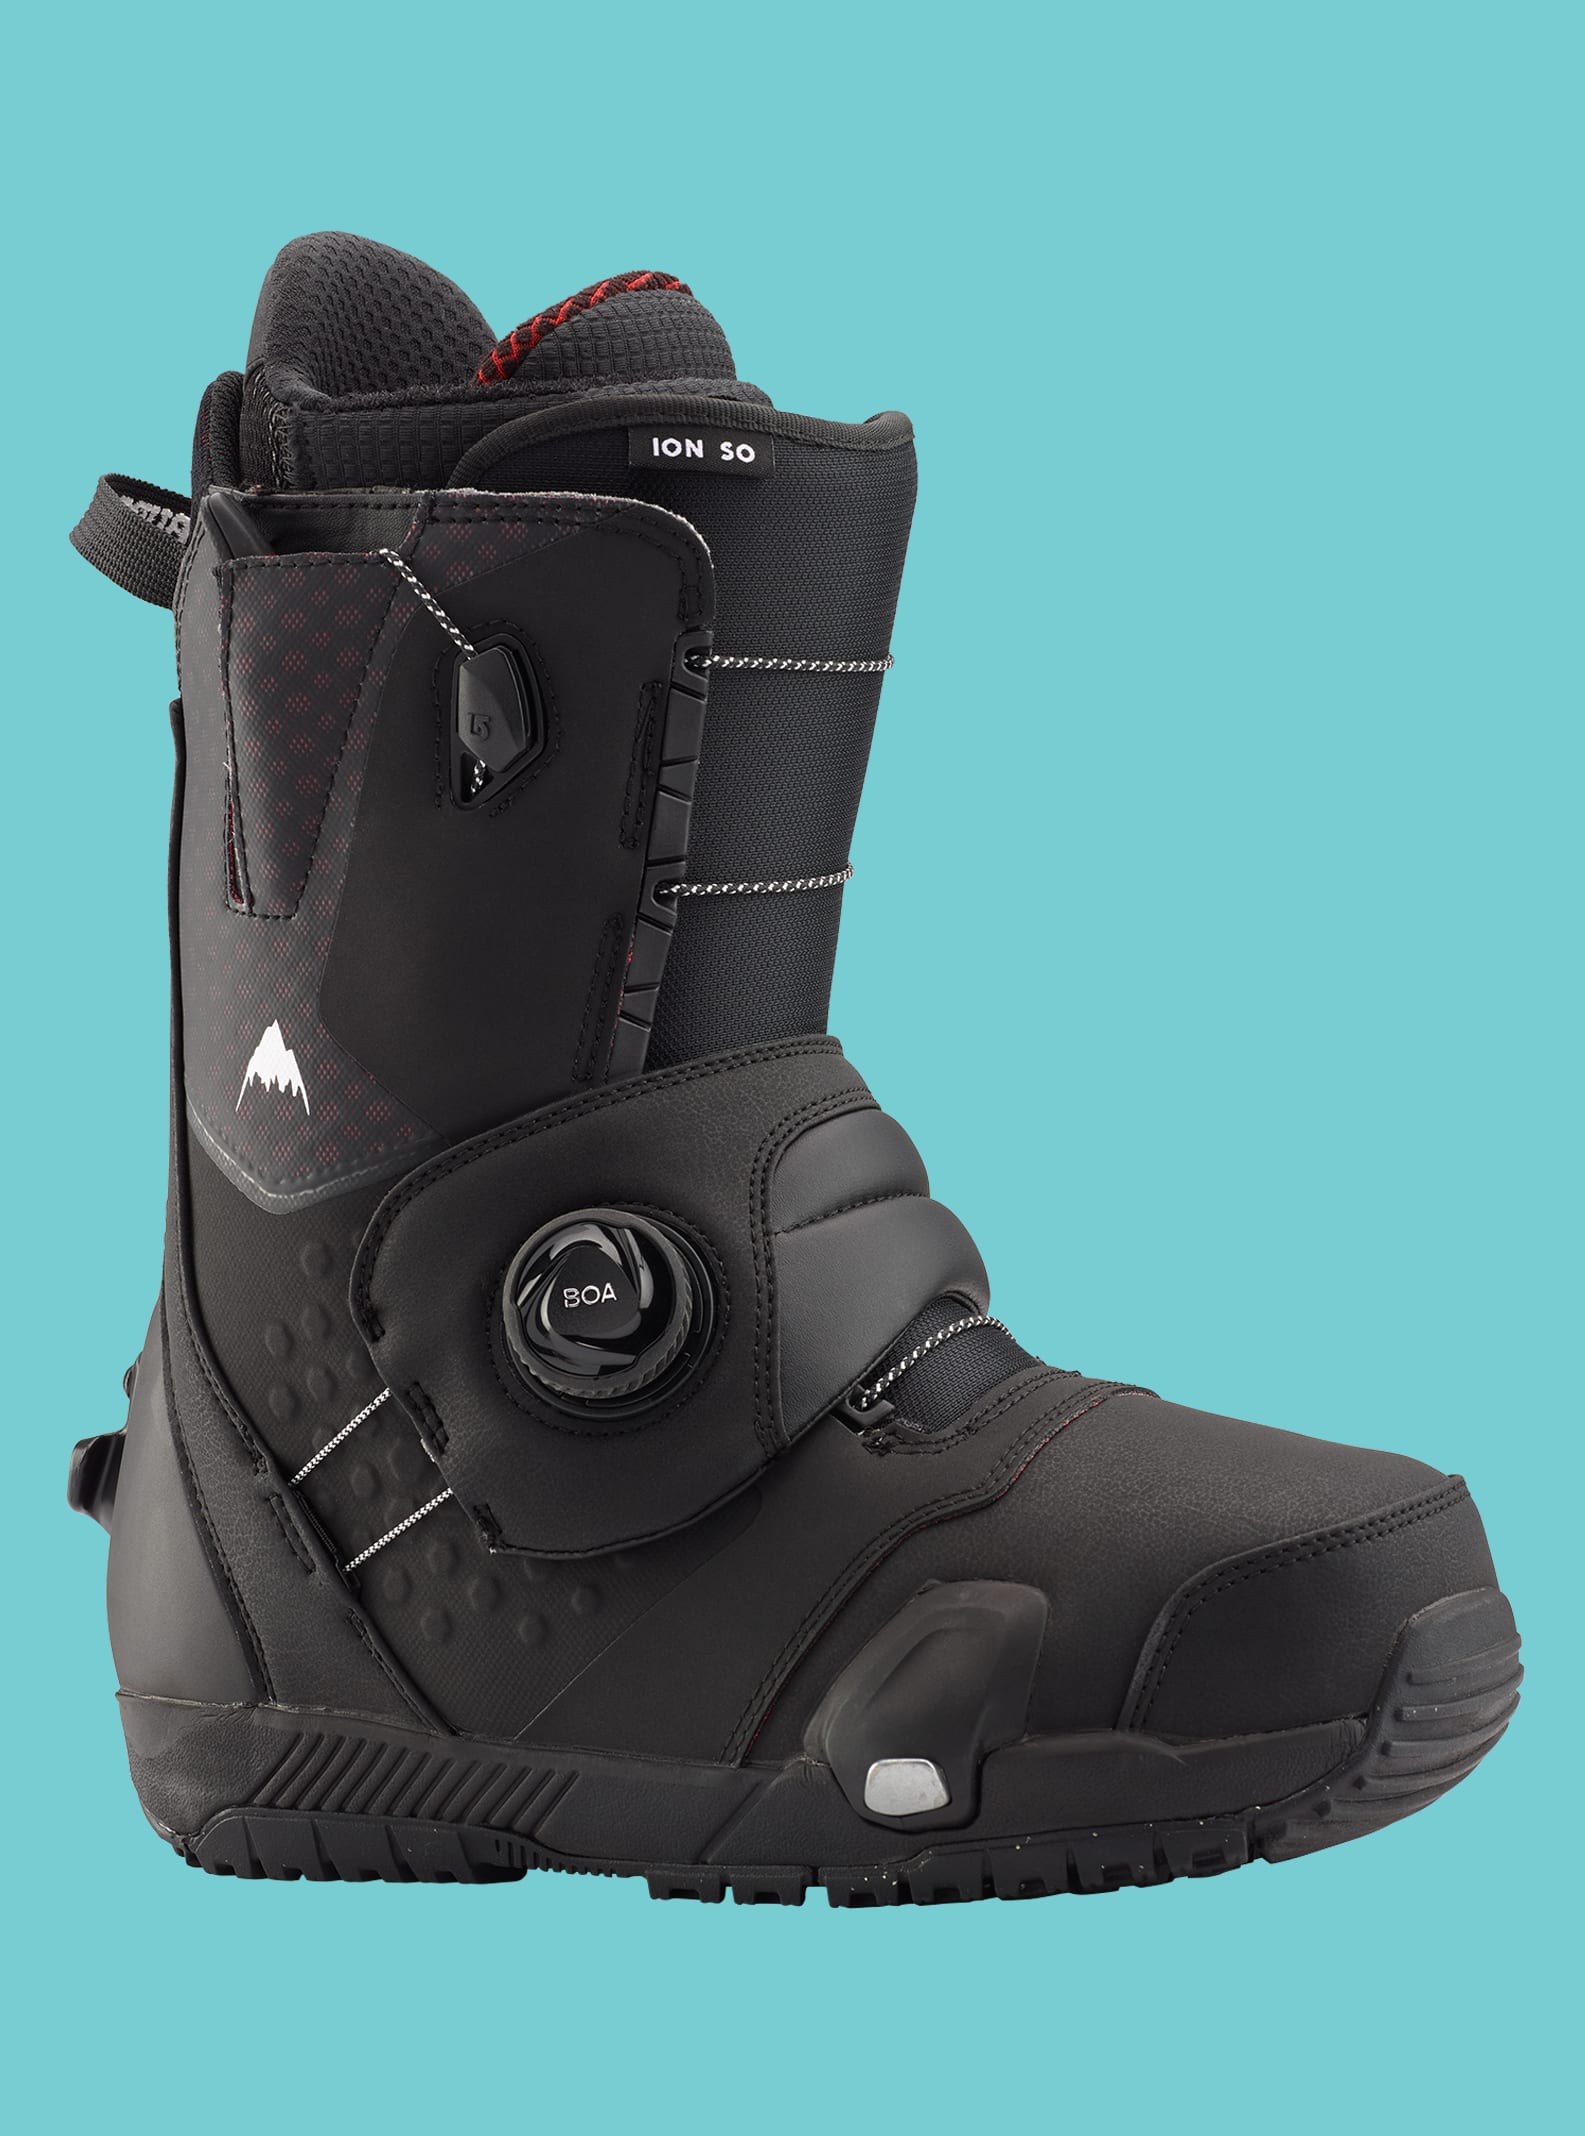 Men's Burton Ion Step On® Boot